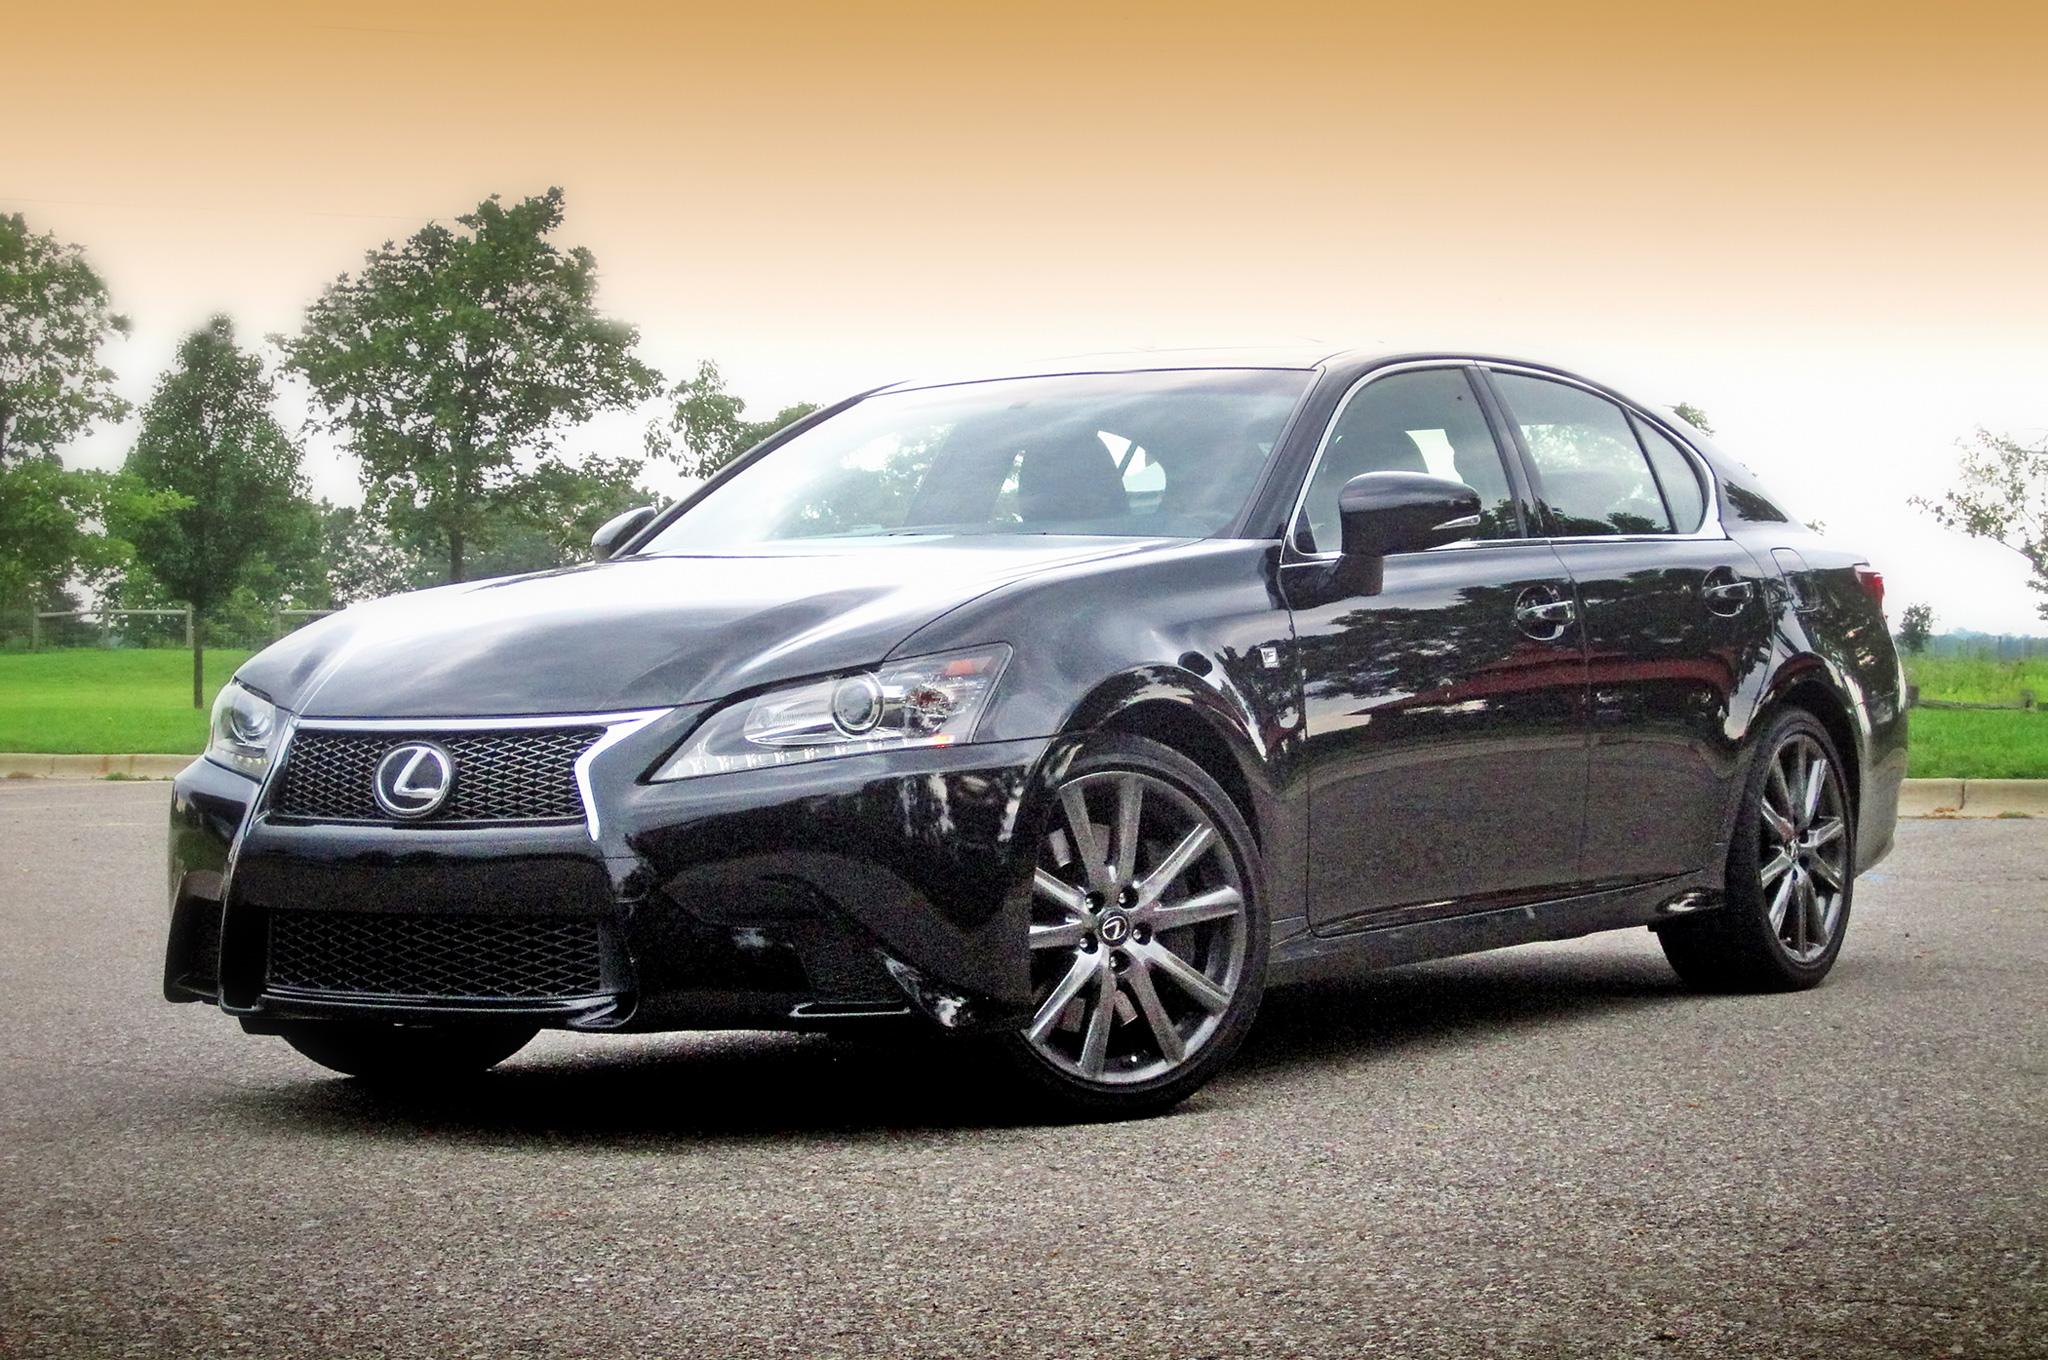 Delightful My Week In A 2013 Lexus GS 350 F Sport